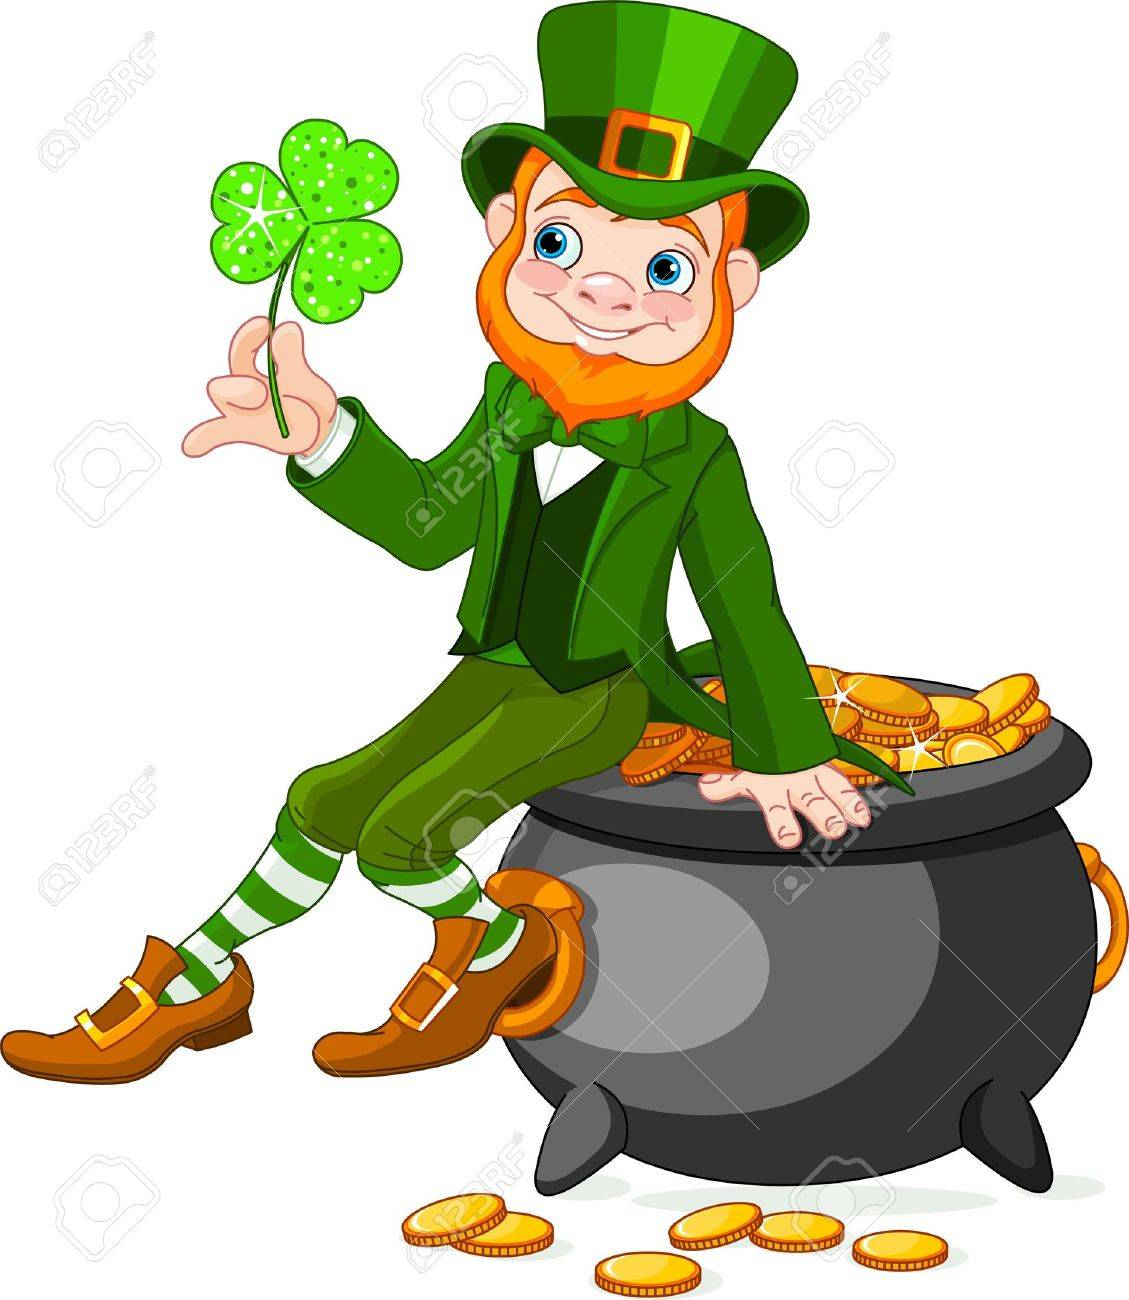 Cute cartoon Leprechaun sitting on pot of gold.